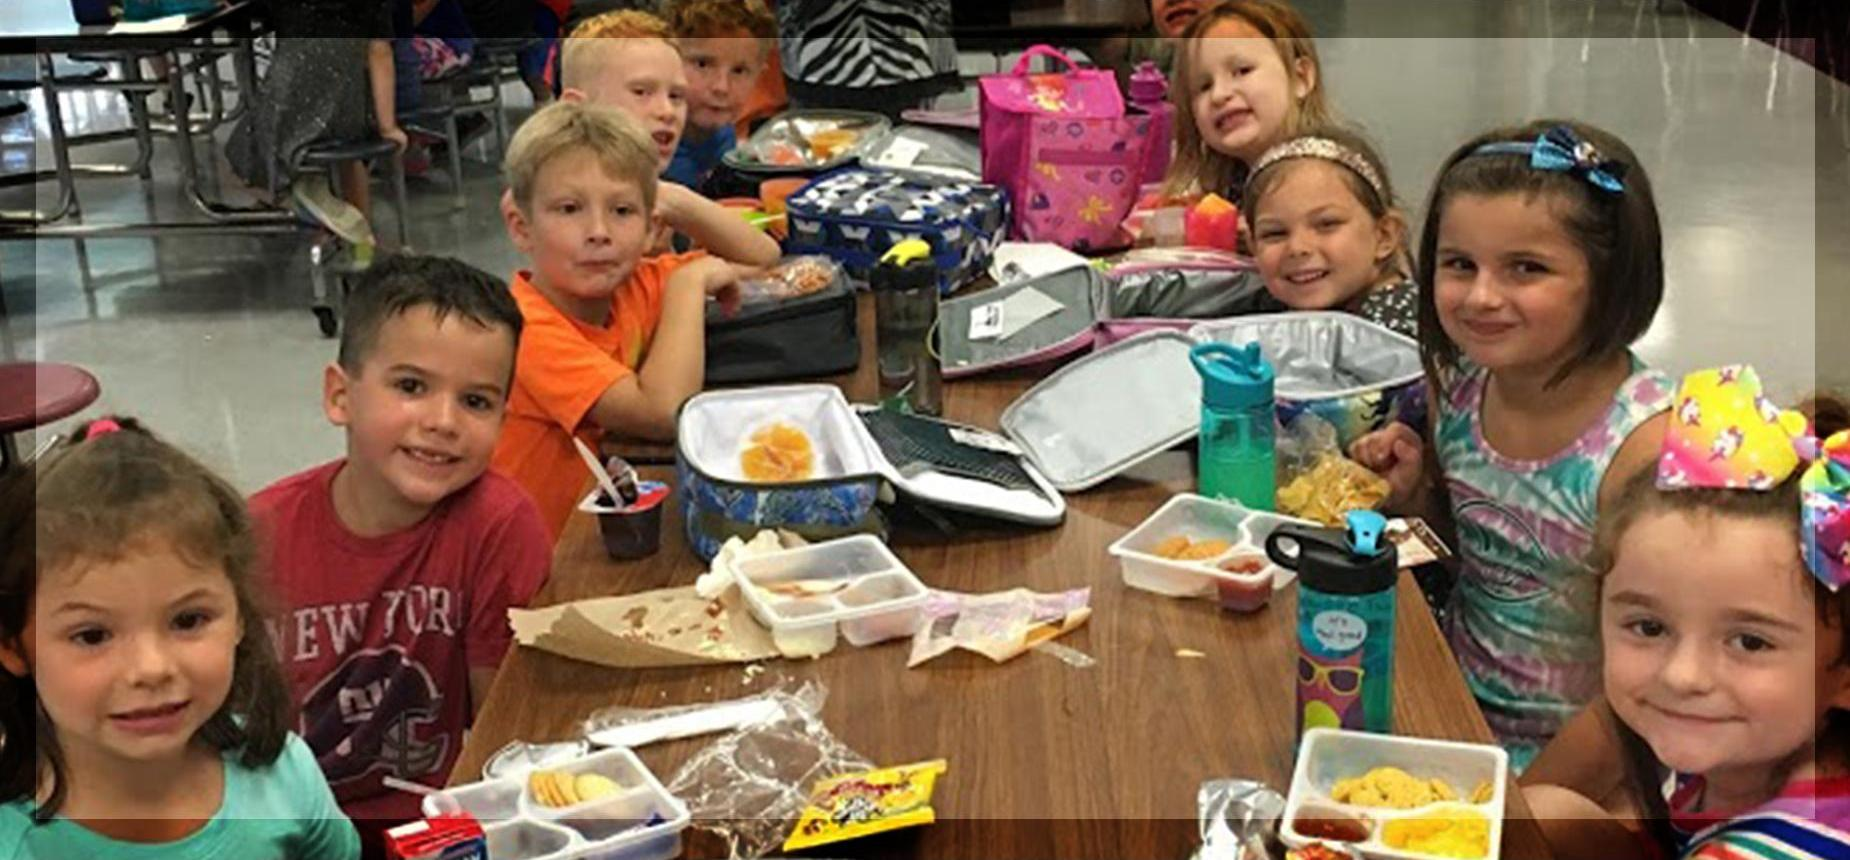 Elementary children eating lunch in cafeteria